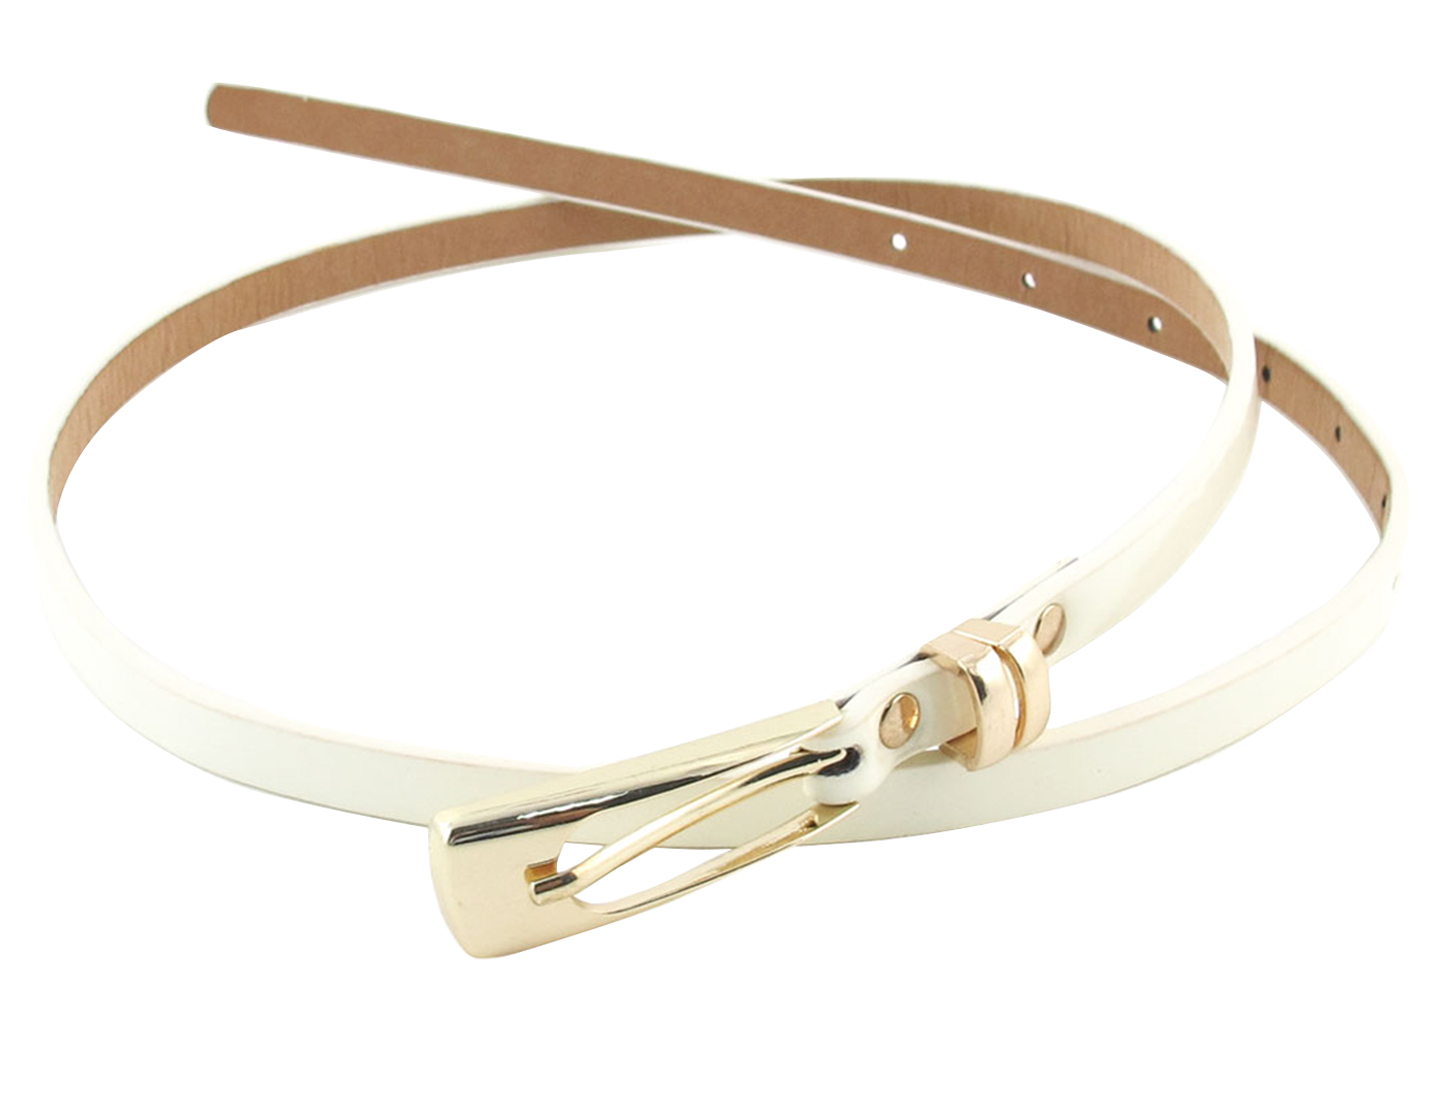 Single Pin Metal Buckle Off White Faux Leather Waist Belt for Lady